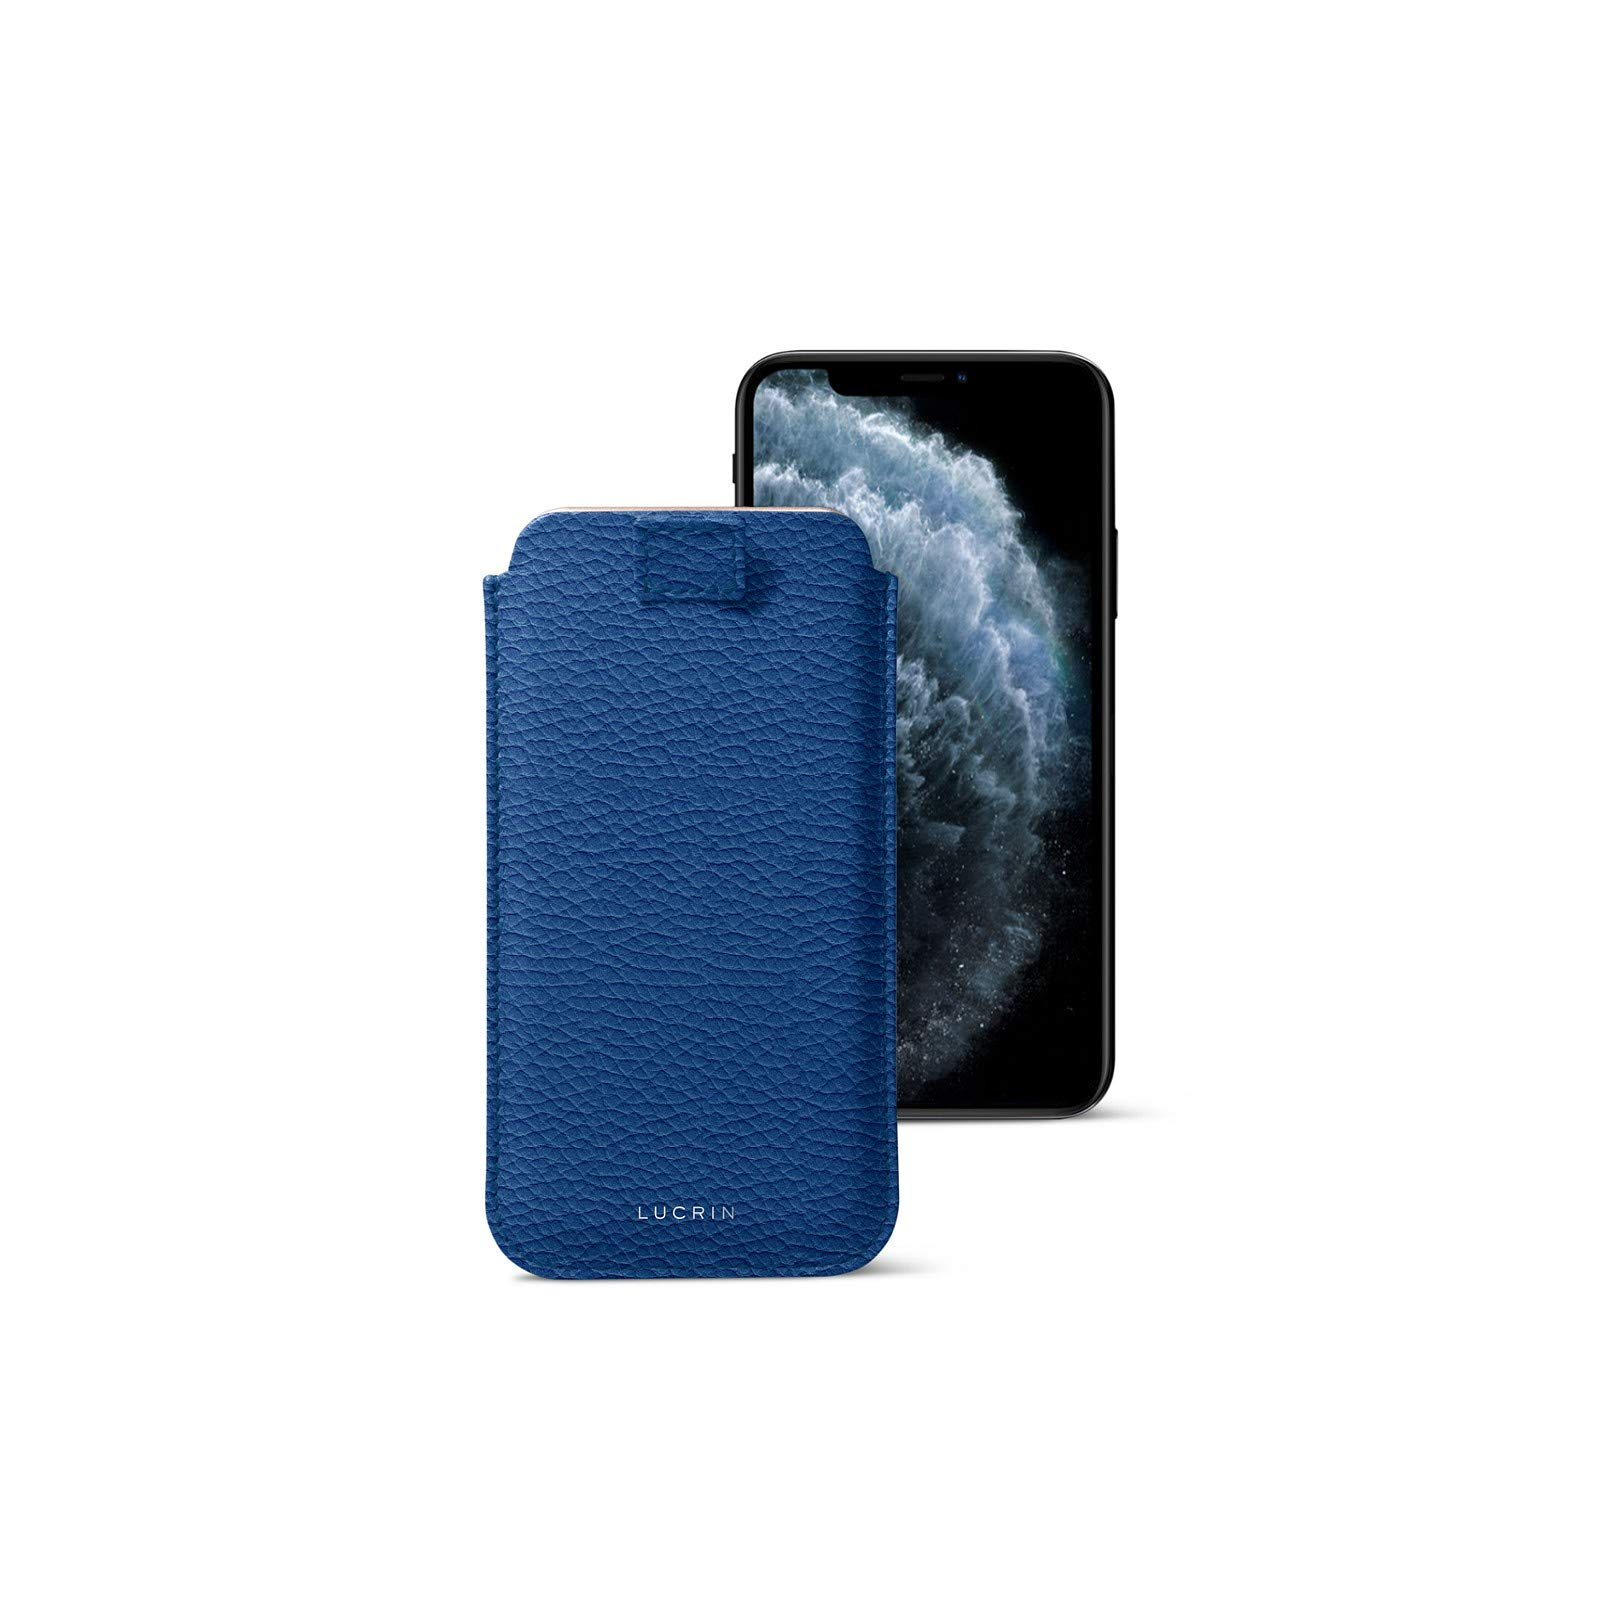 Lucrin - Pull-Up Strap Case Sleeve Cover Compatible with iPhone 11 Pro Max/XS Max/ 8 Plus and Wireless Charging - Royal Blue - Granulated Leather